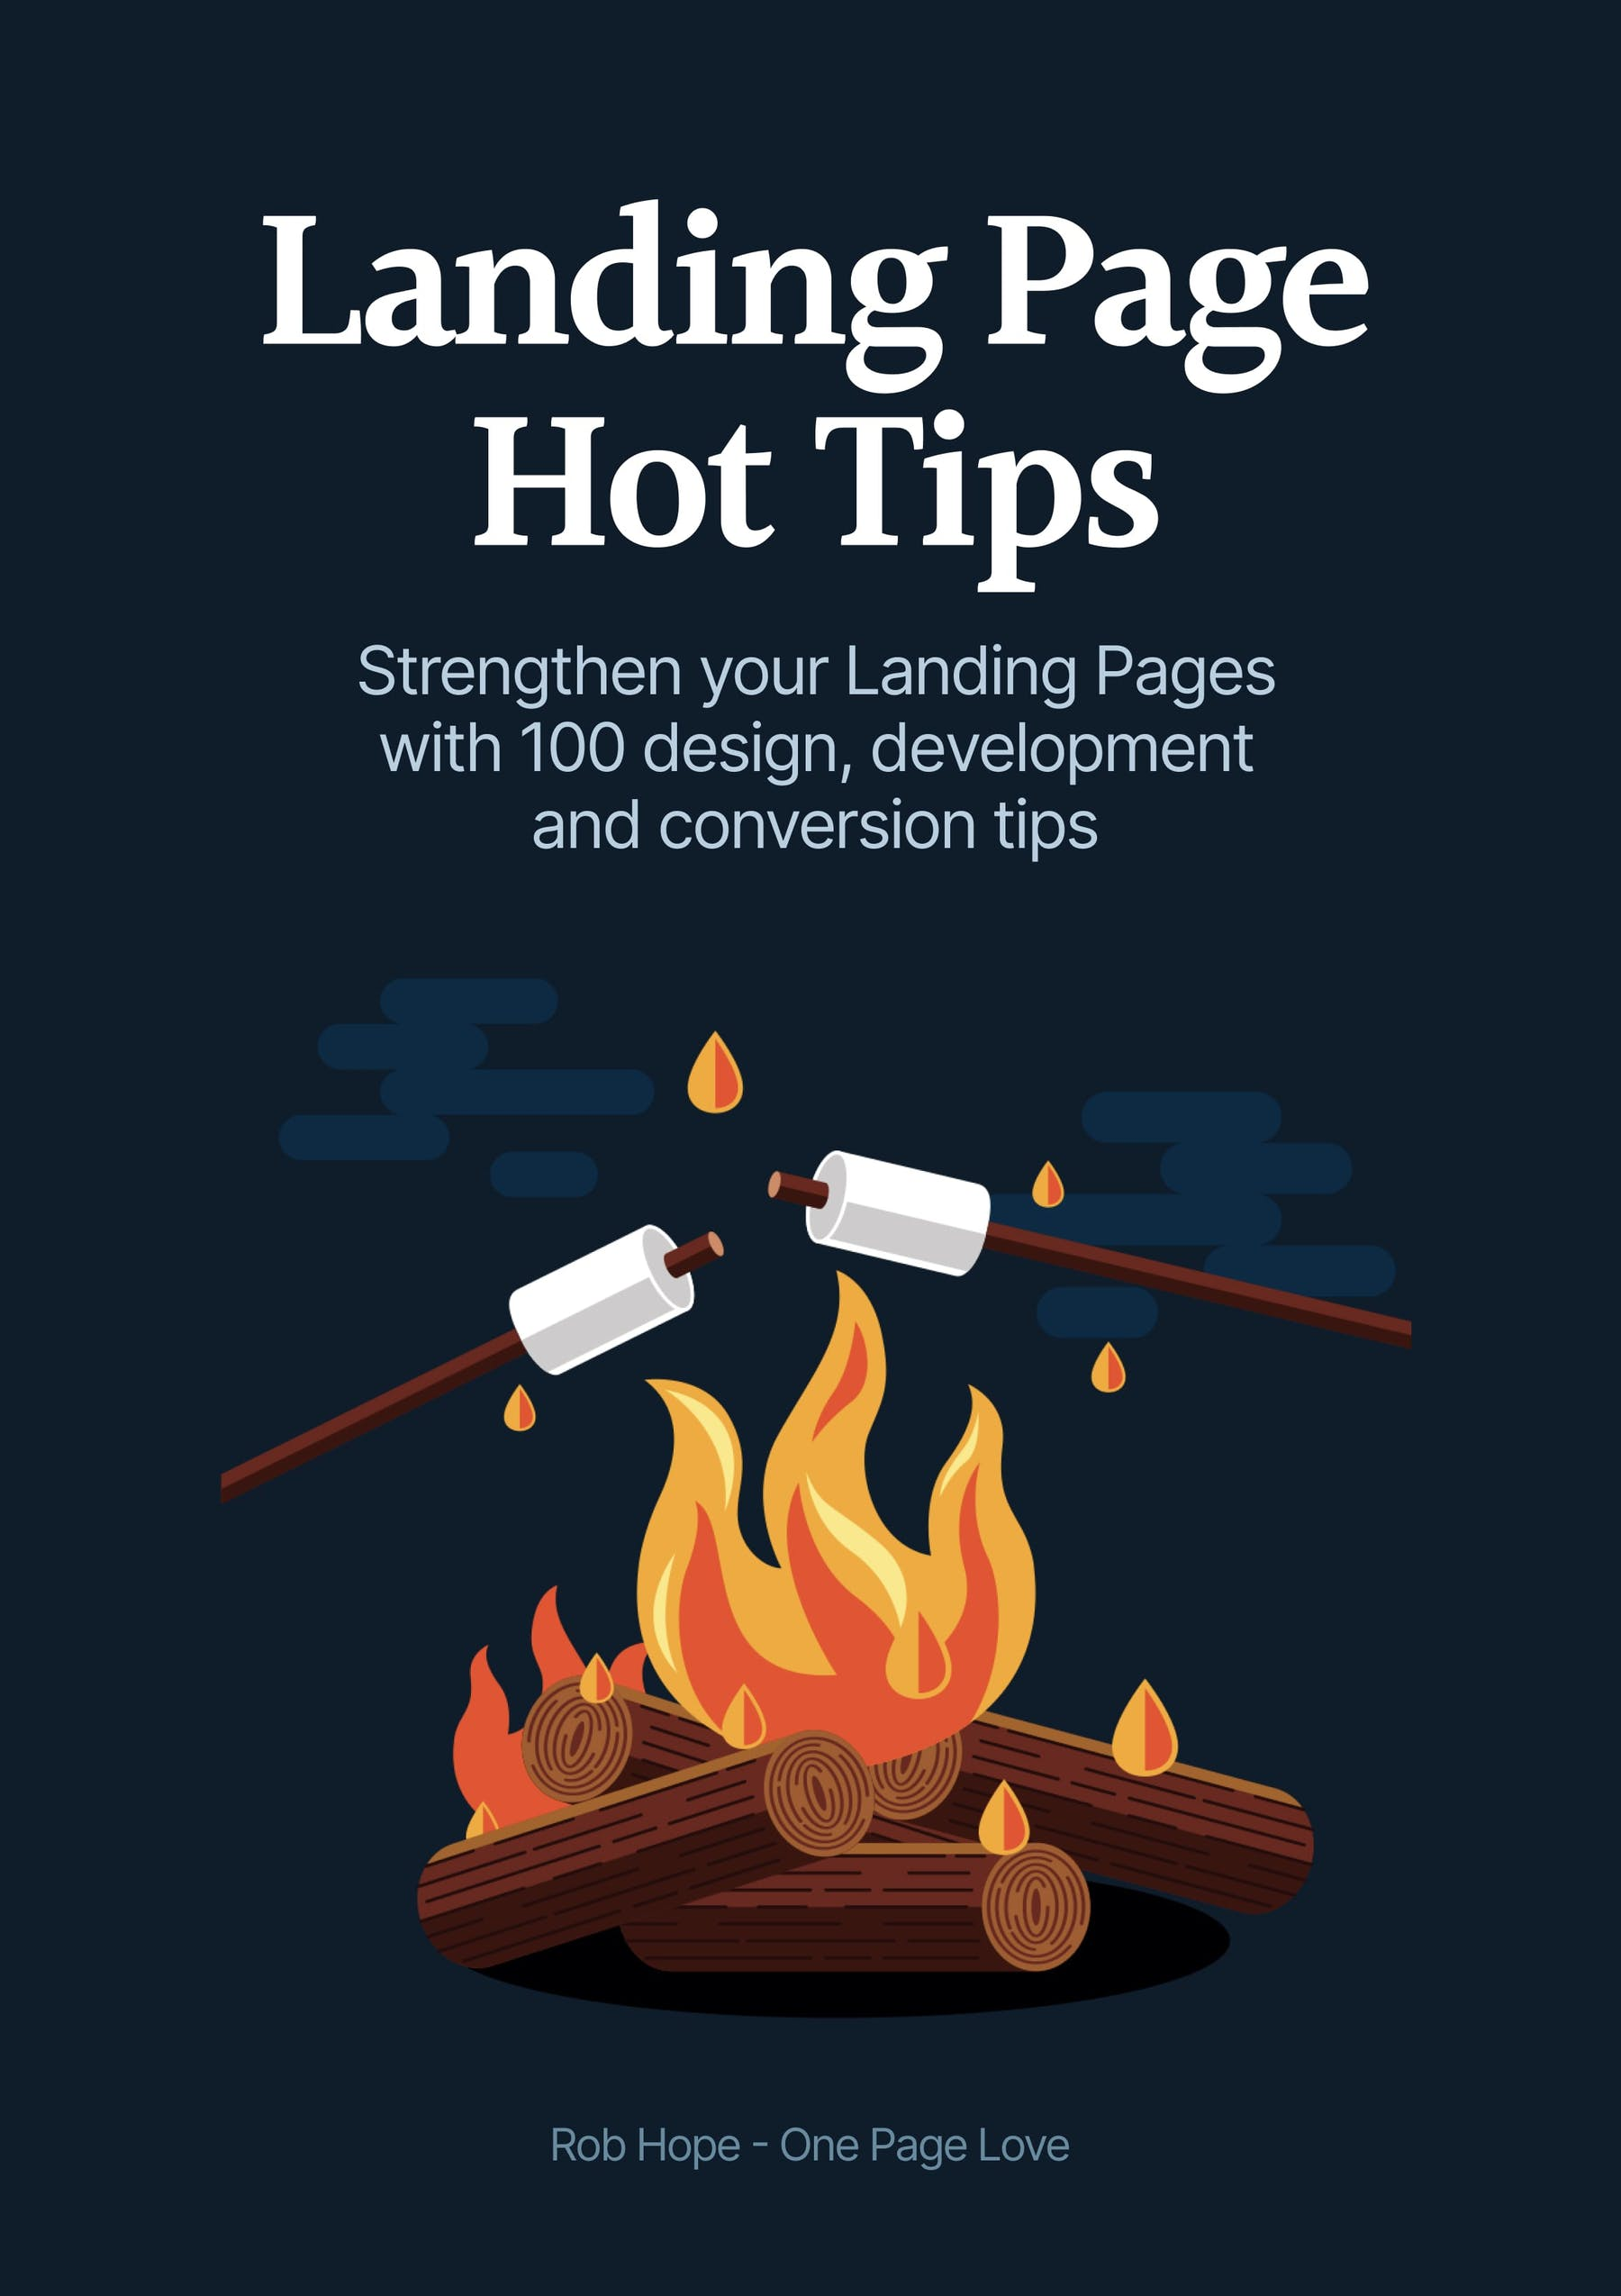 Landing Page Hot Tips by Rob Hope